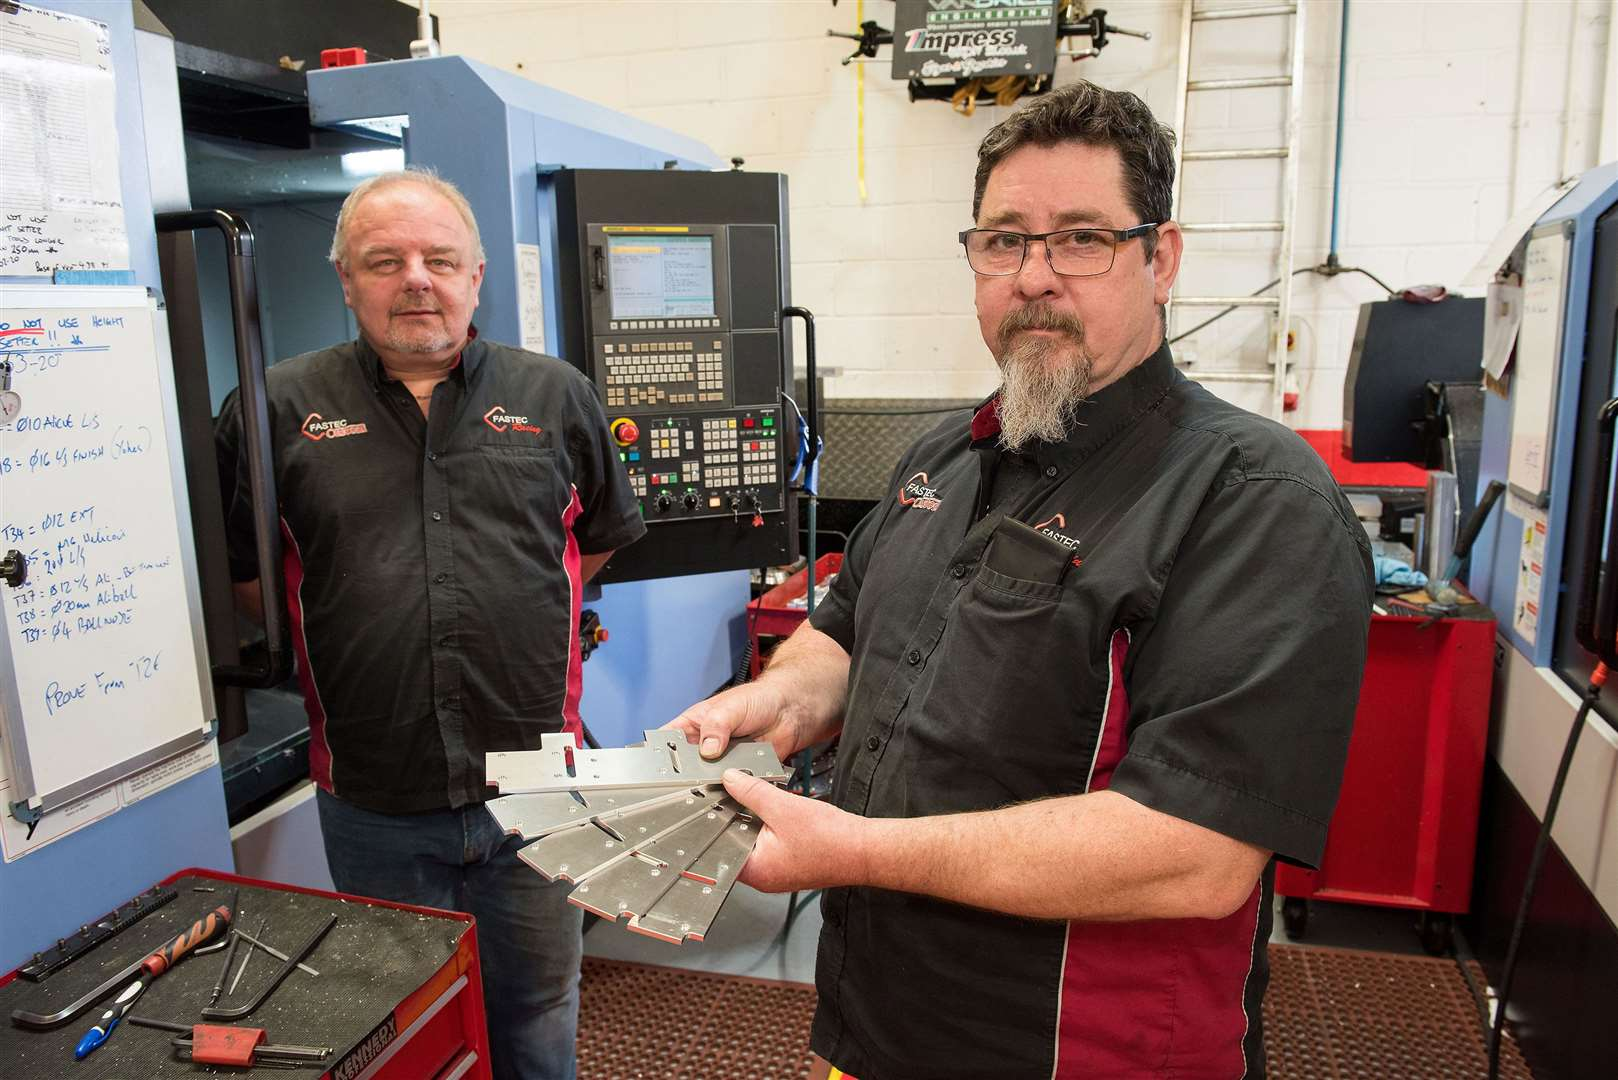 Fastec Racing Newmarket in the process of manufacturing 550 parts for ventilator machines to help with current demand. Danny Starmer and John Williams directors. Picture by Mark Westley. (33973814)